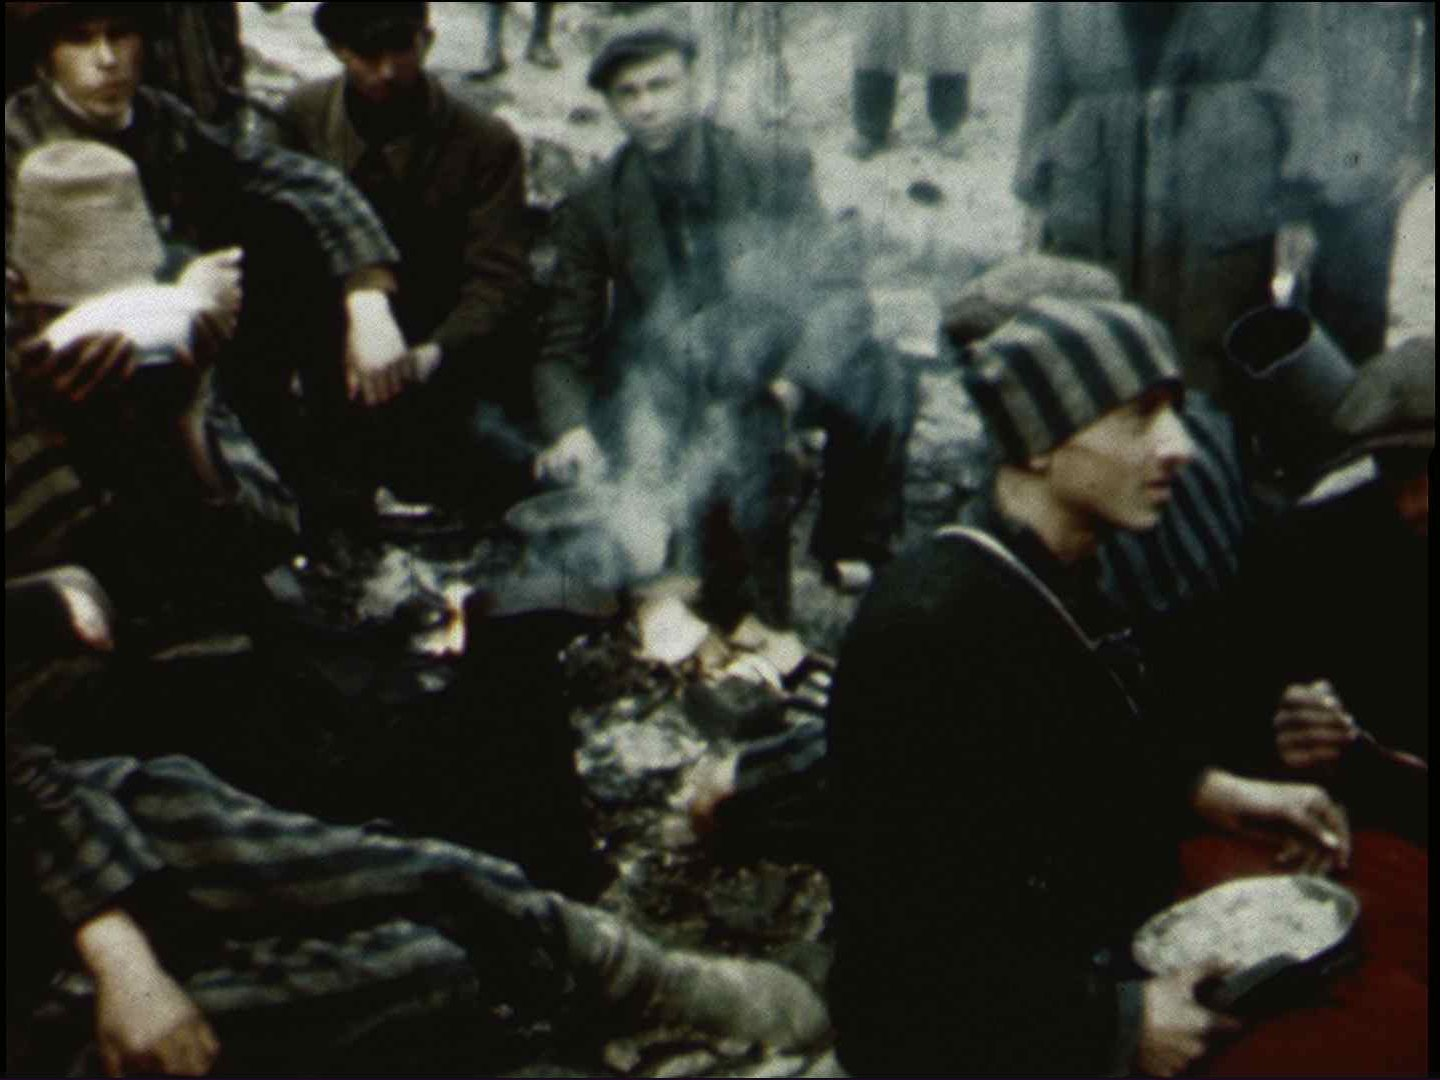 Norman Krasna: Lest we forget (Liberation footage)